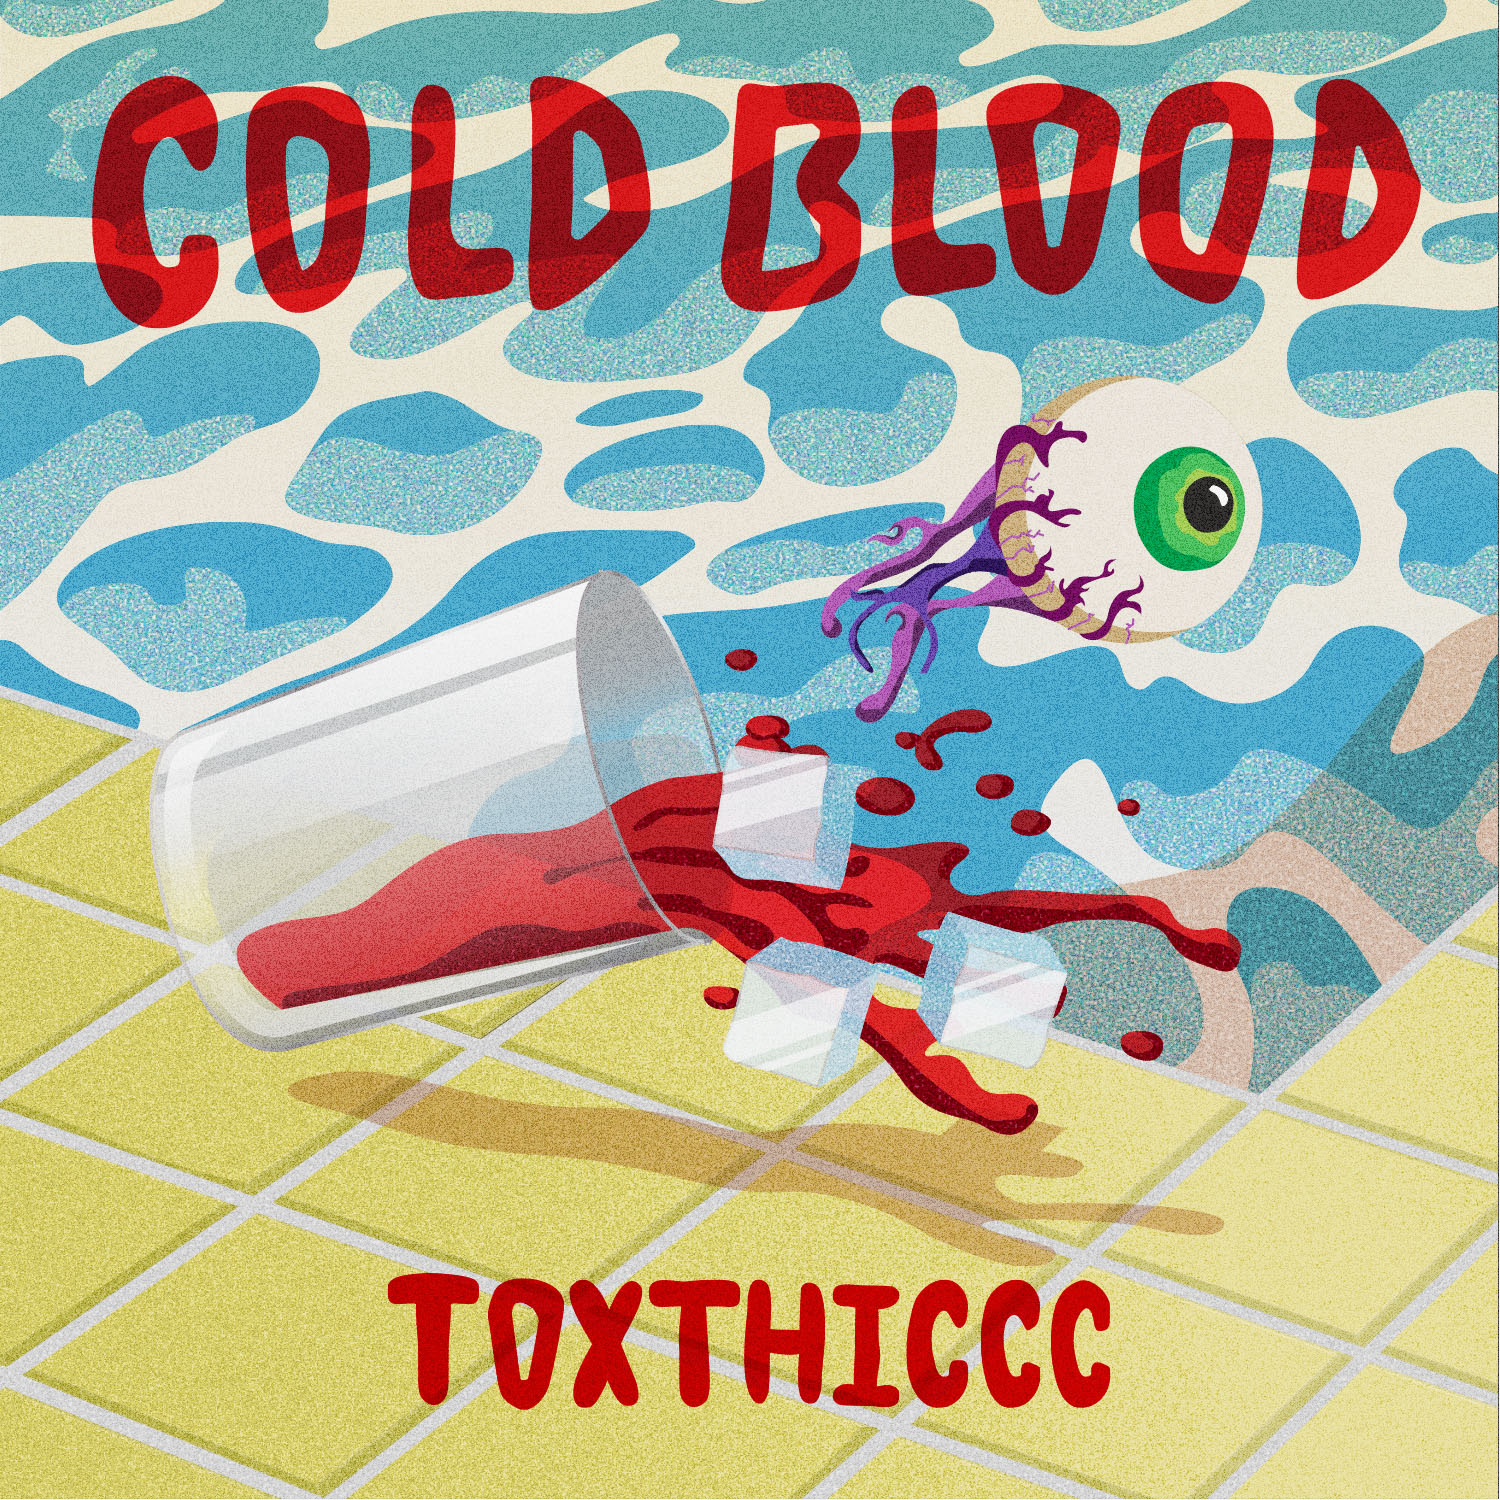 COLDBLOOD_TOXTHICCC.jpg